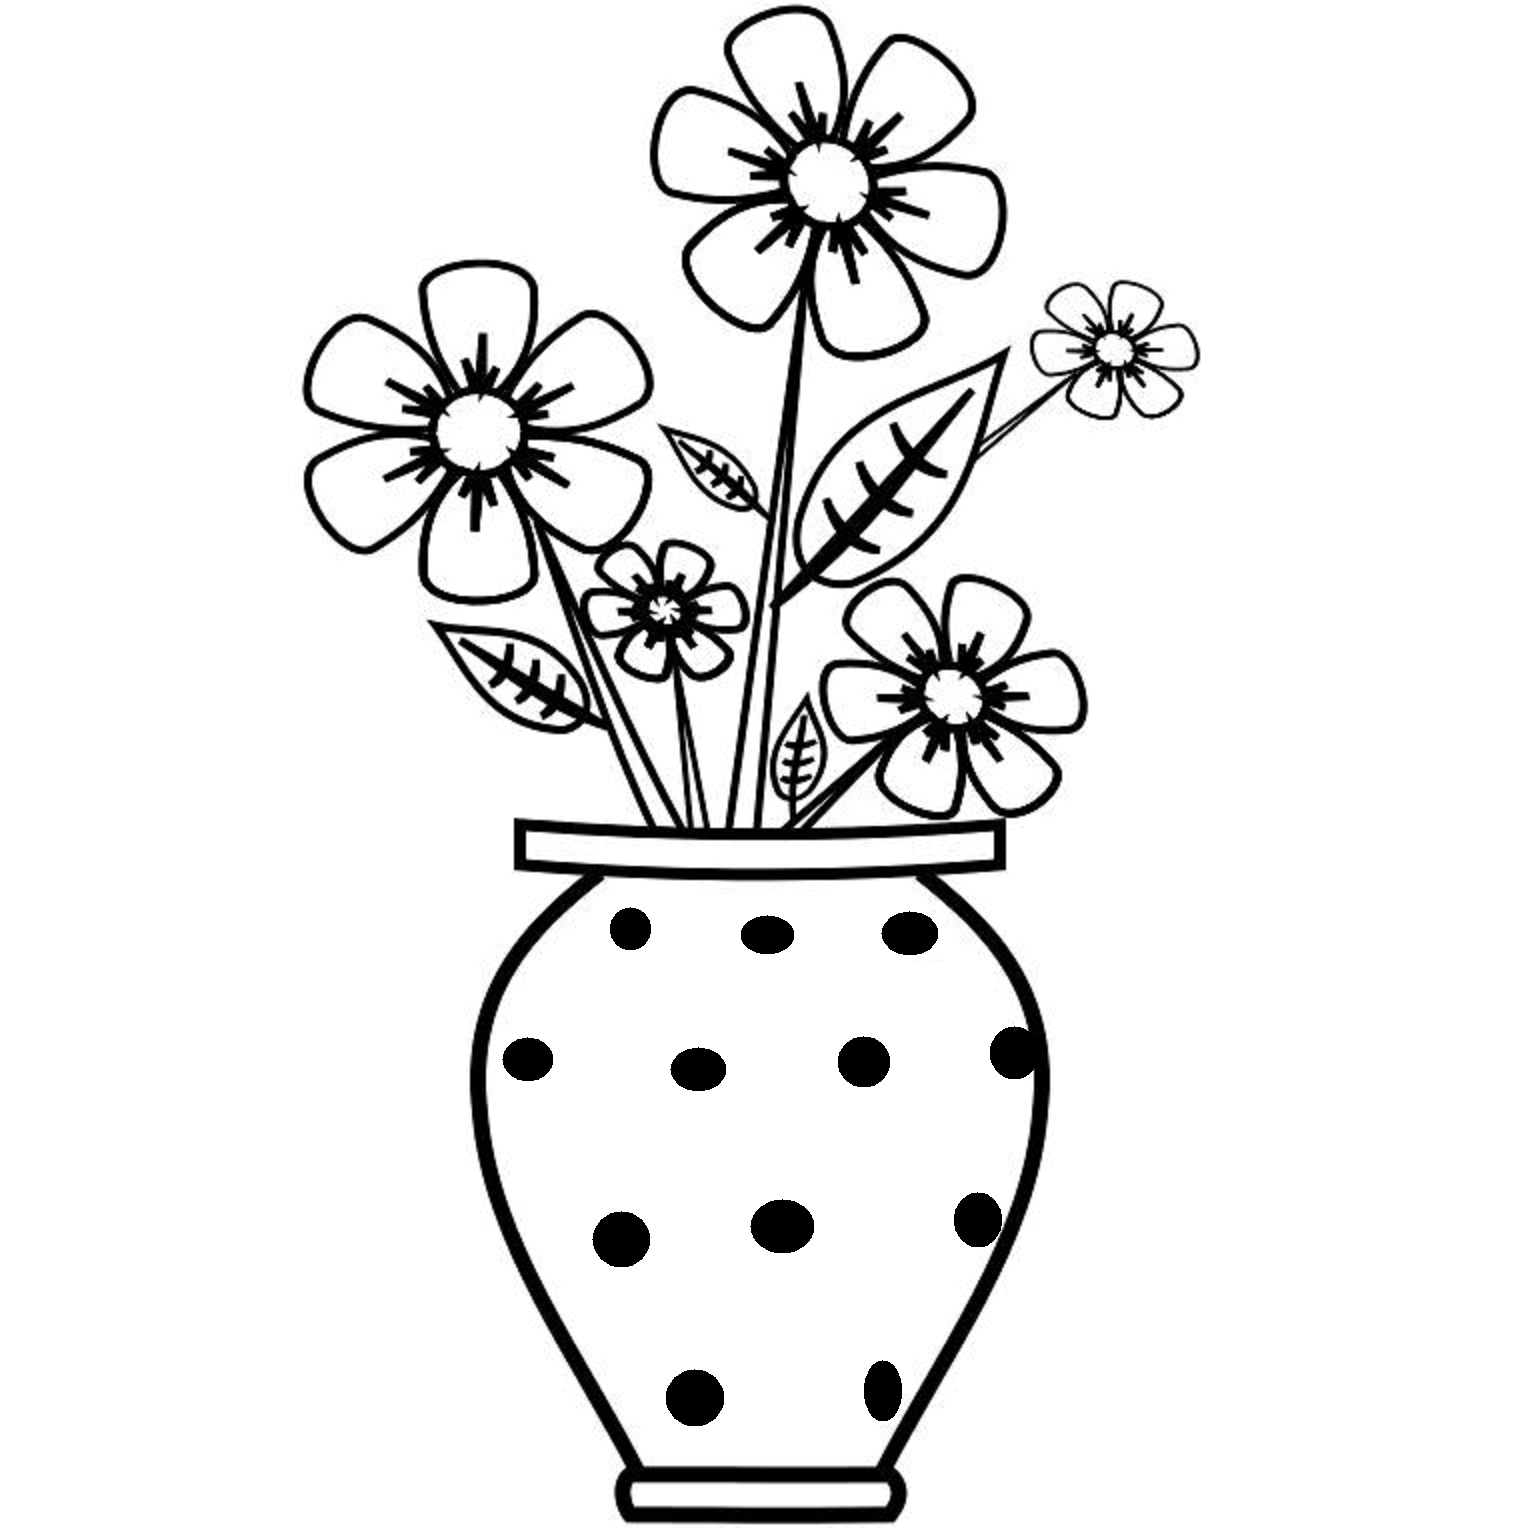 1532x1528 Photos Draw A Picture Of Flowers Vase With Flowers,